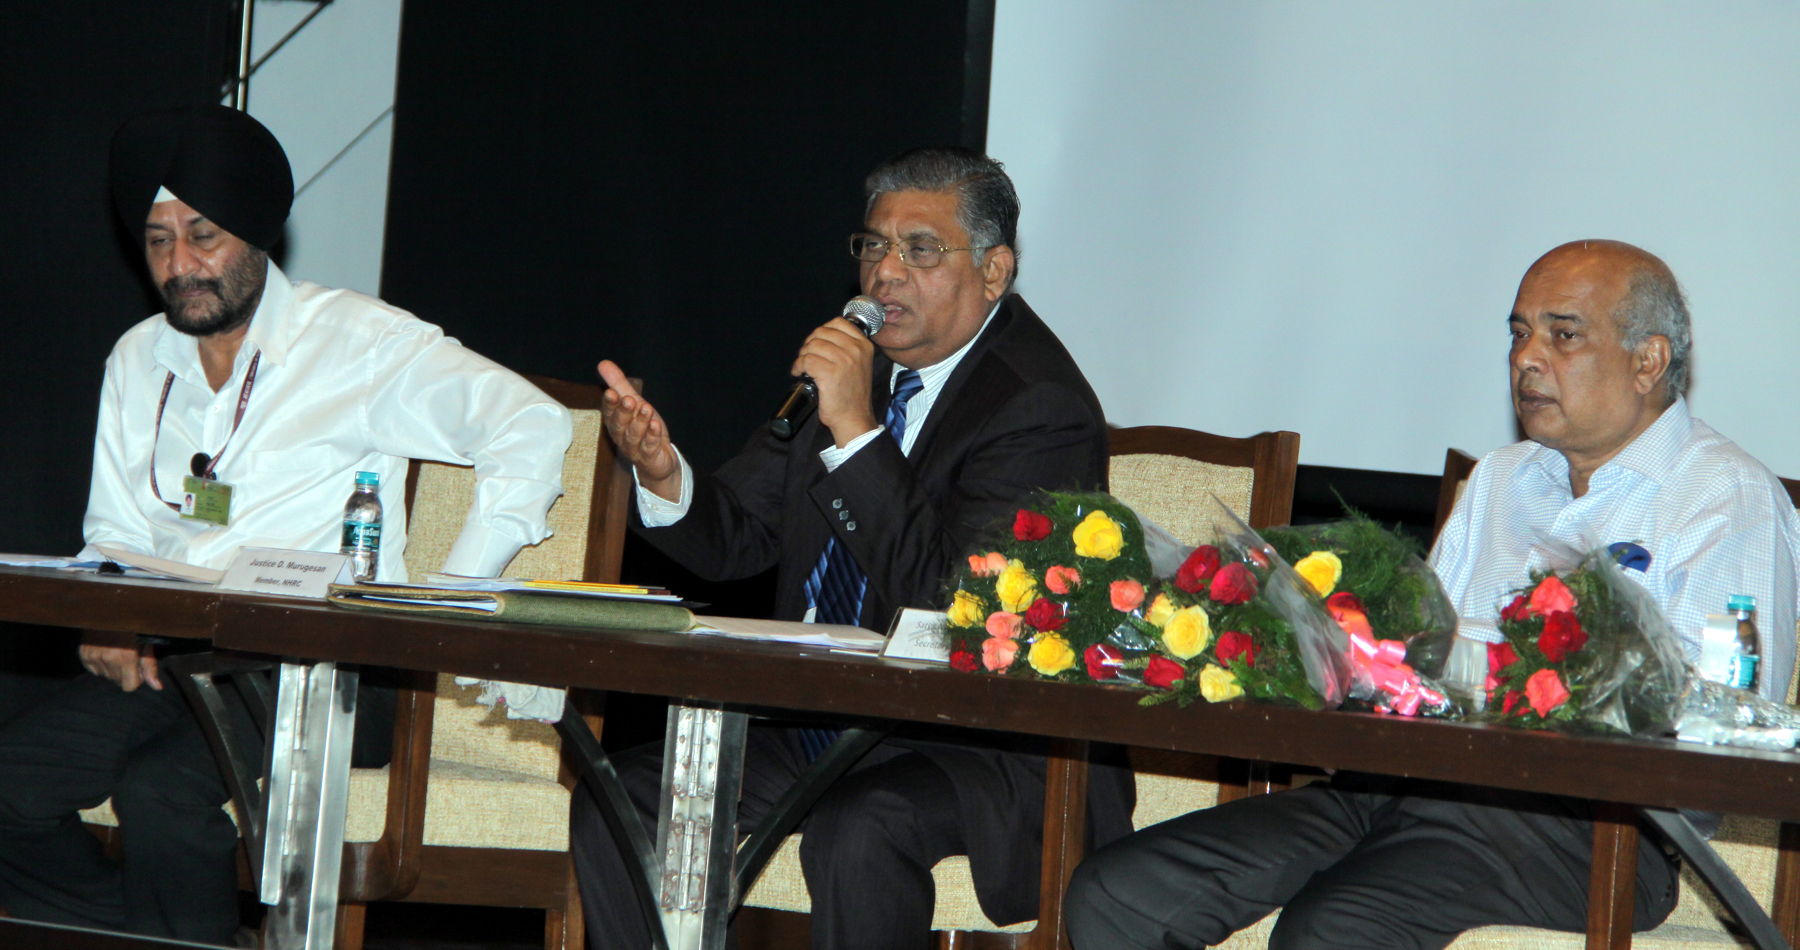 Mr. Justice D. Murugesan, Hon�ble Member, NHRC addressng in the one day Regional Workshop on elimination of Bonded Labour at Chandigarh Judicial Academy, Sector-43, Chandigarh on Thursday, July 30, 2015.